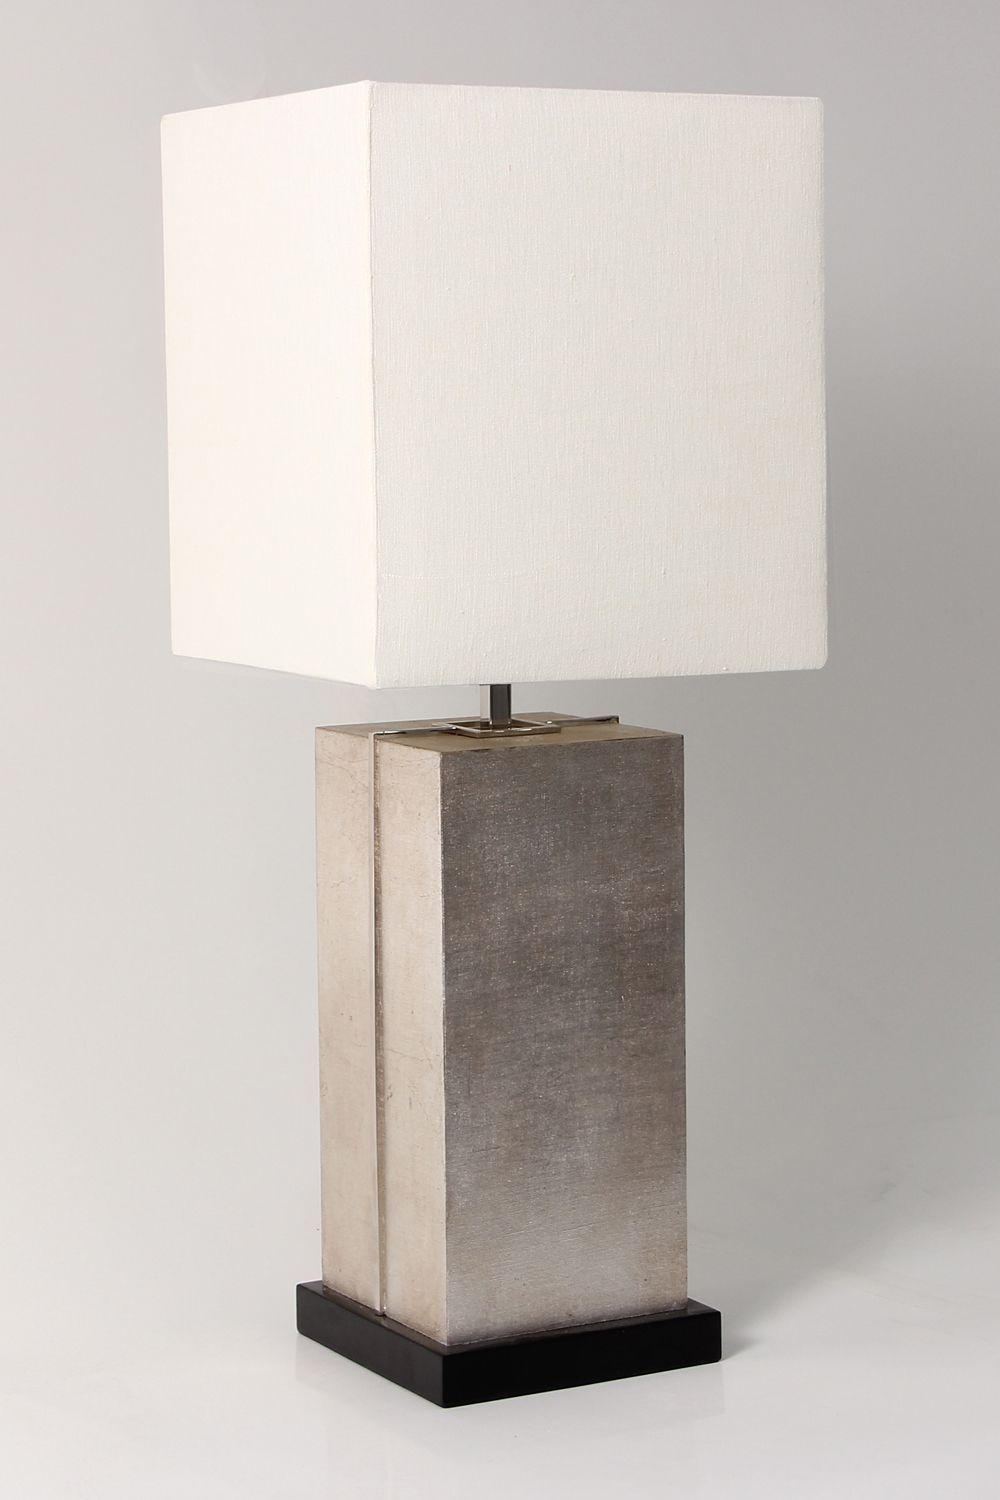 Interior Design Table Lamps photo design table Pinterest